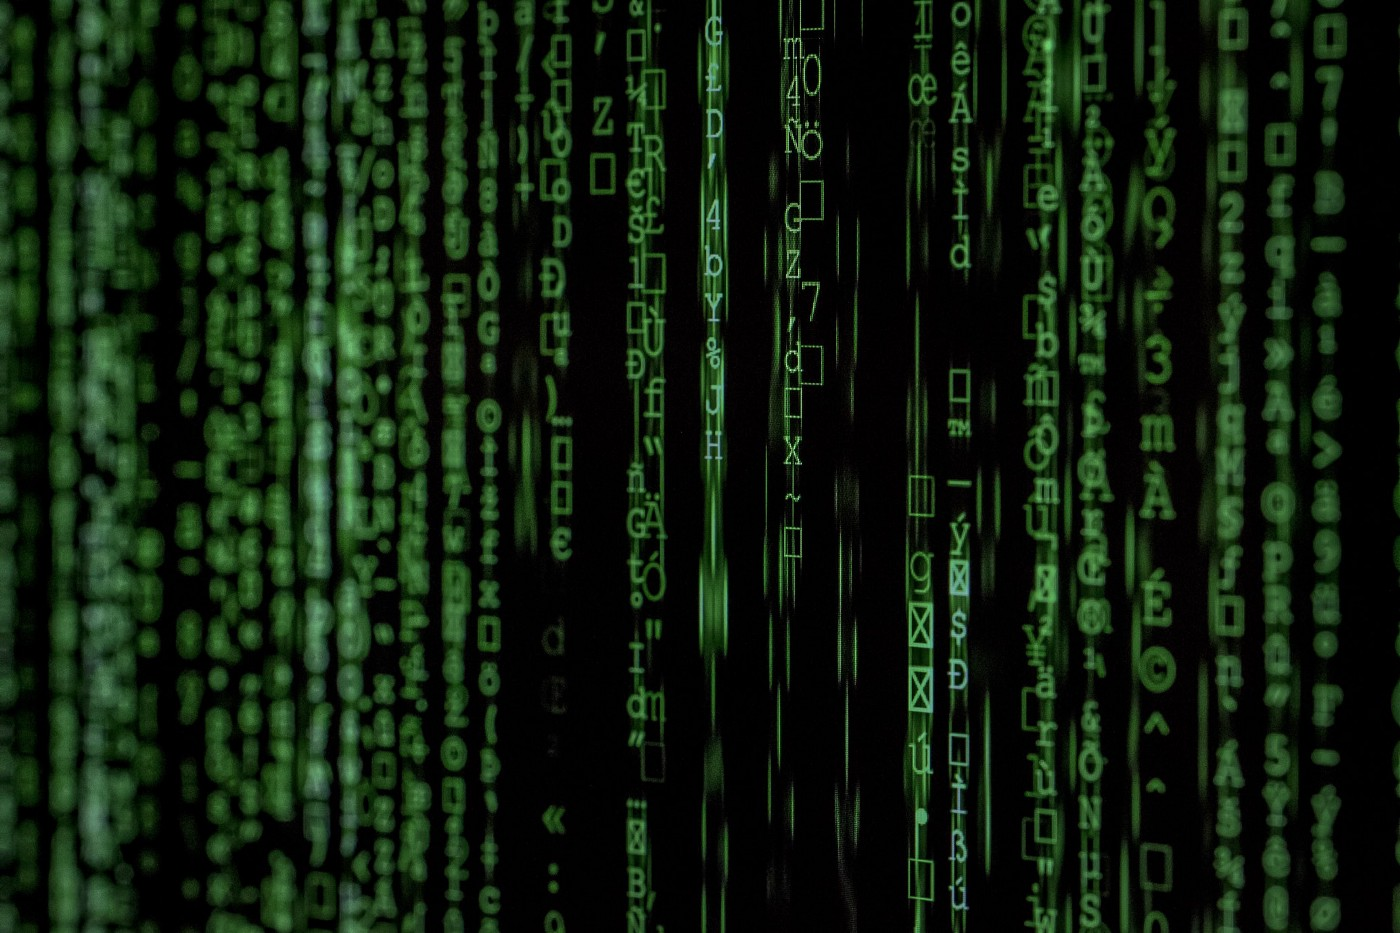 Inside the Matrix: (bits and bytes from a computer screen)